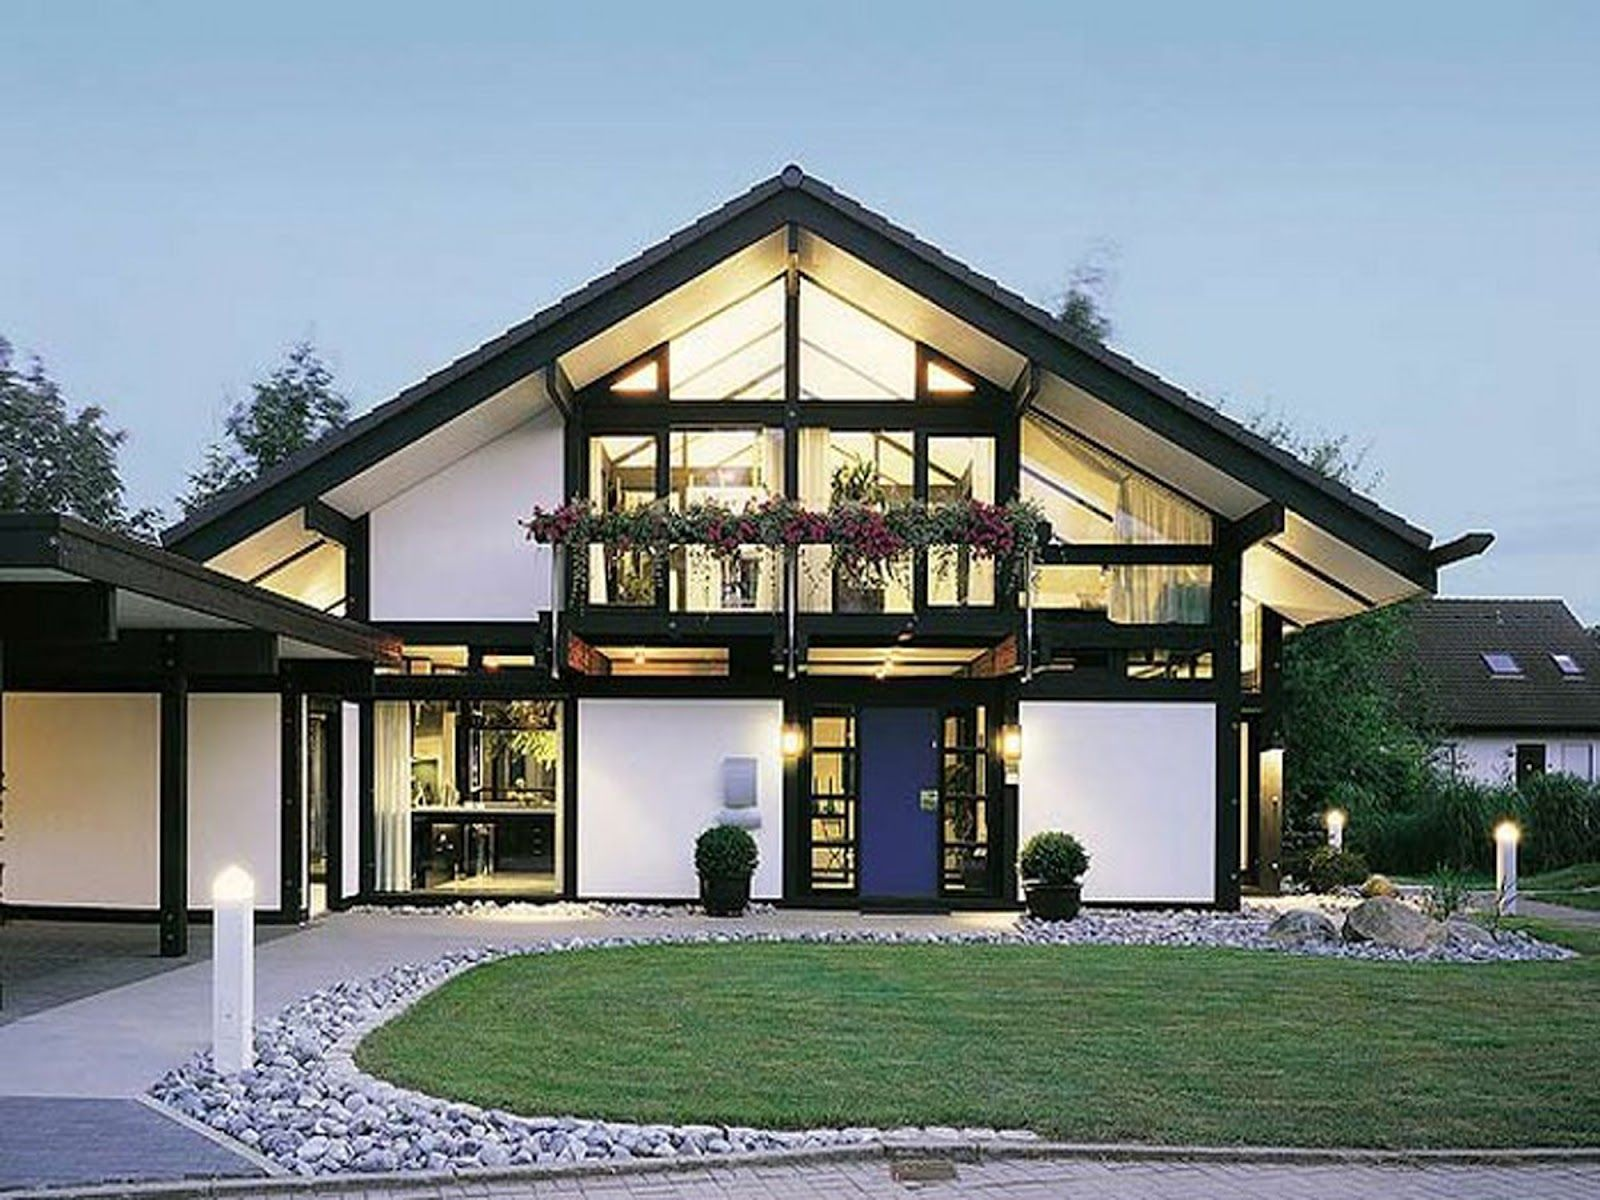 new home designs latest beautiful latest modern home designs - Home Design Modern